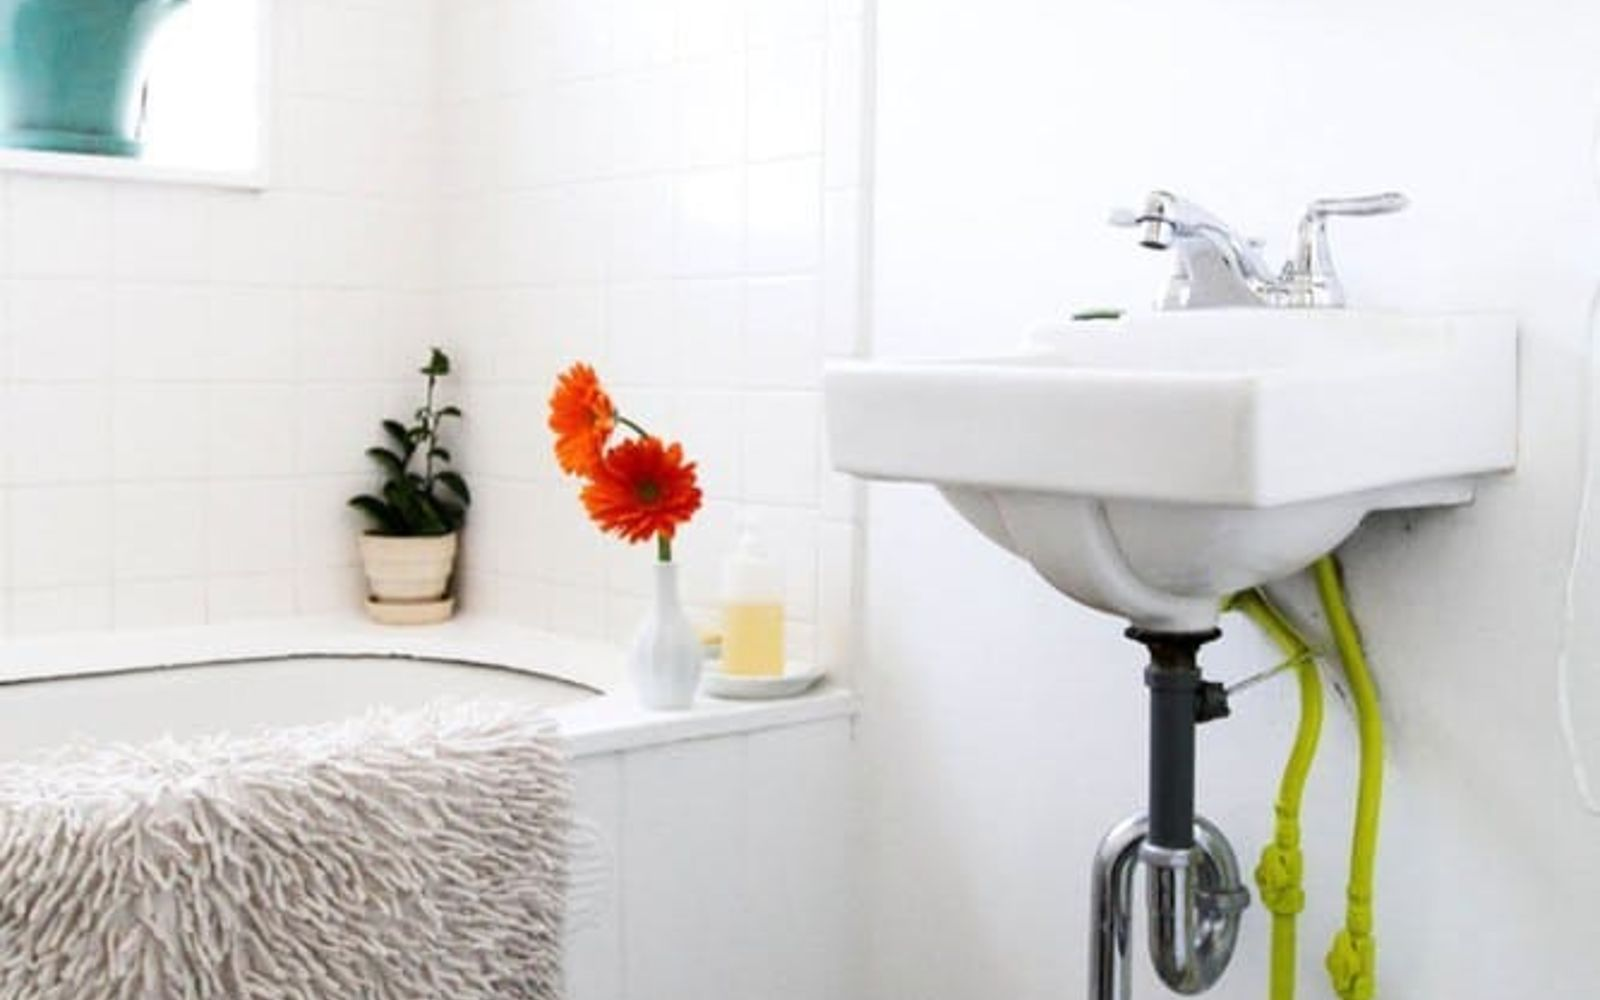 s 11 easy ways to refresh your old bathtub, Clean Your Porcelain Tub